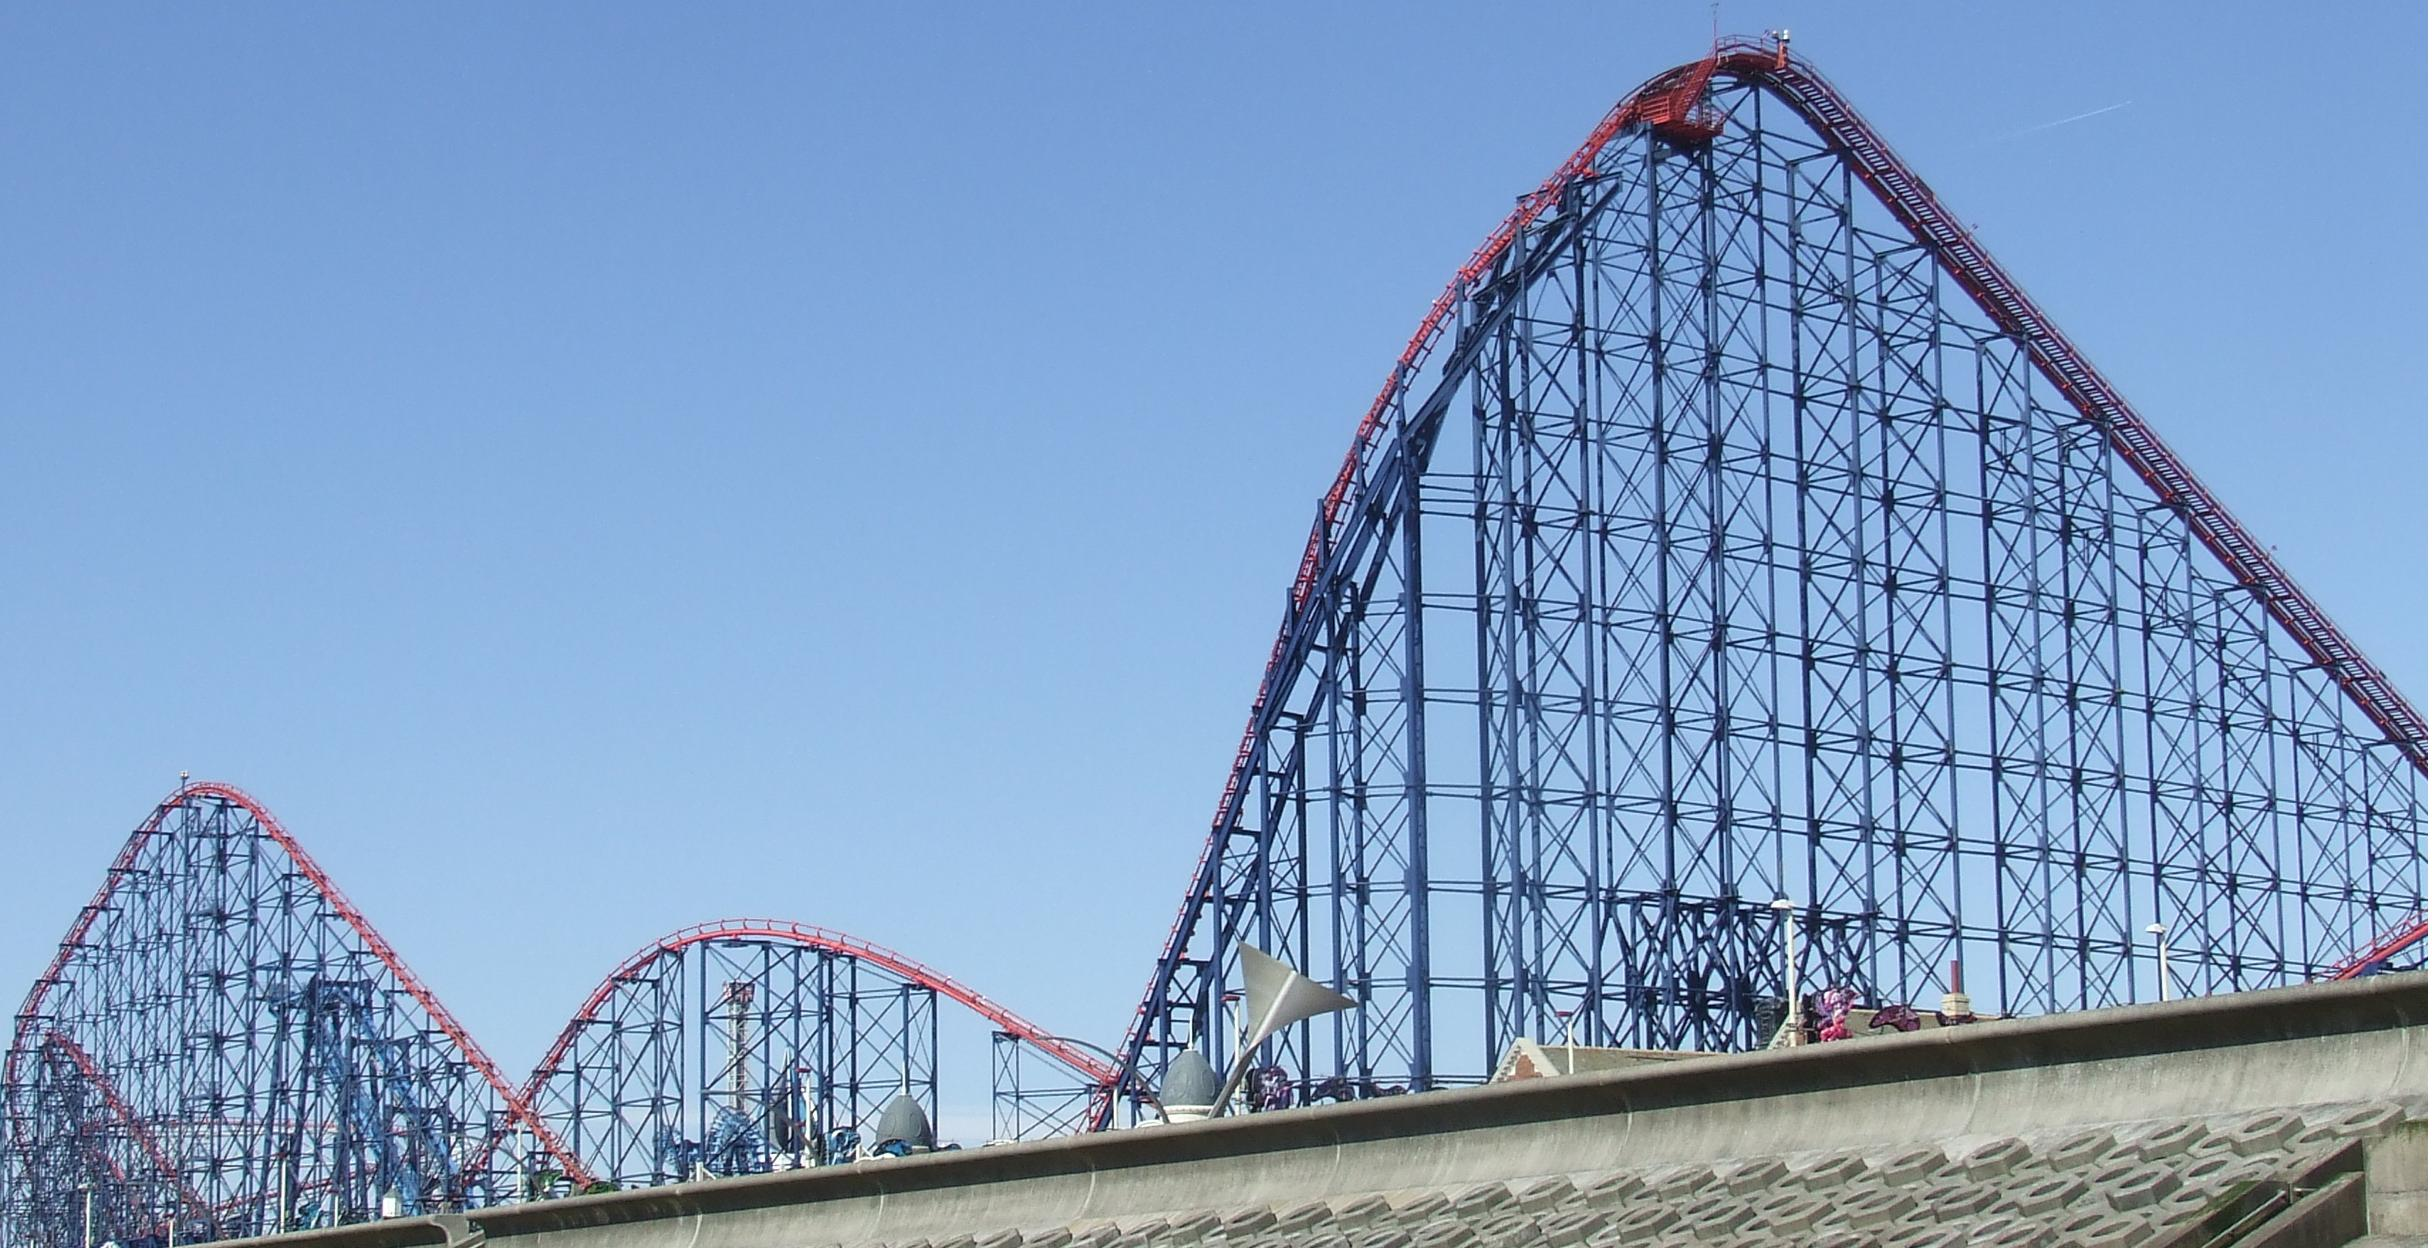 Roller Coasters facts